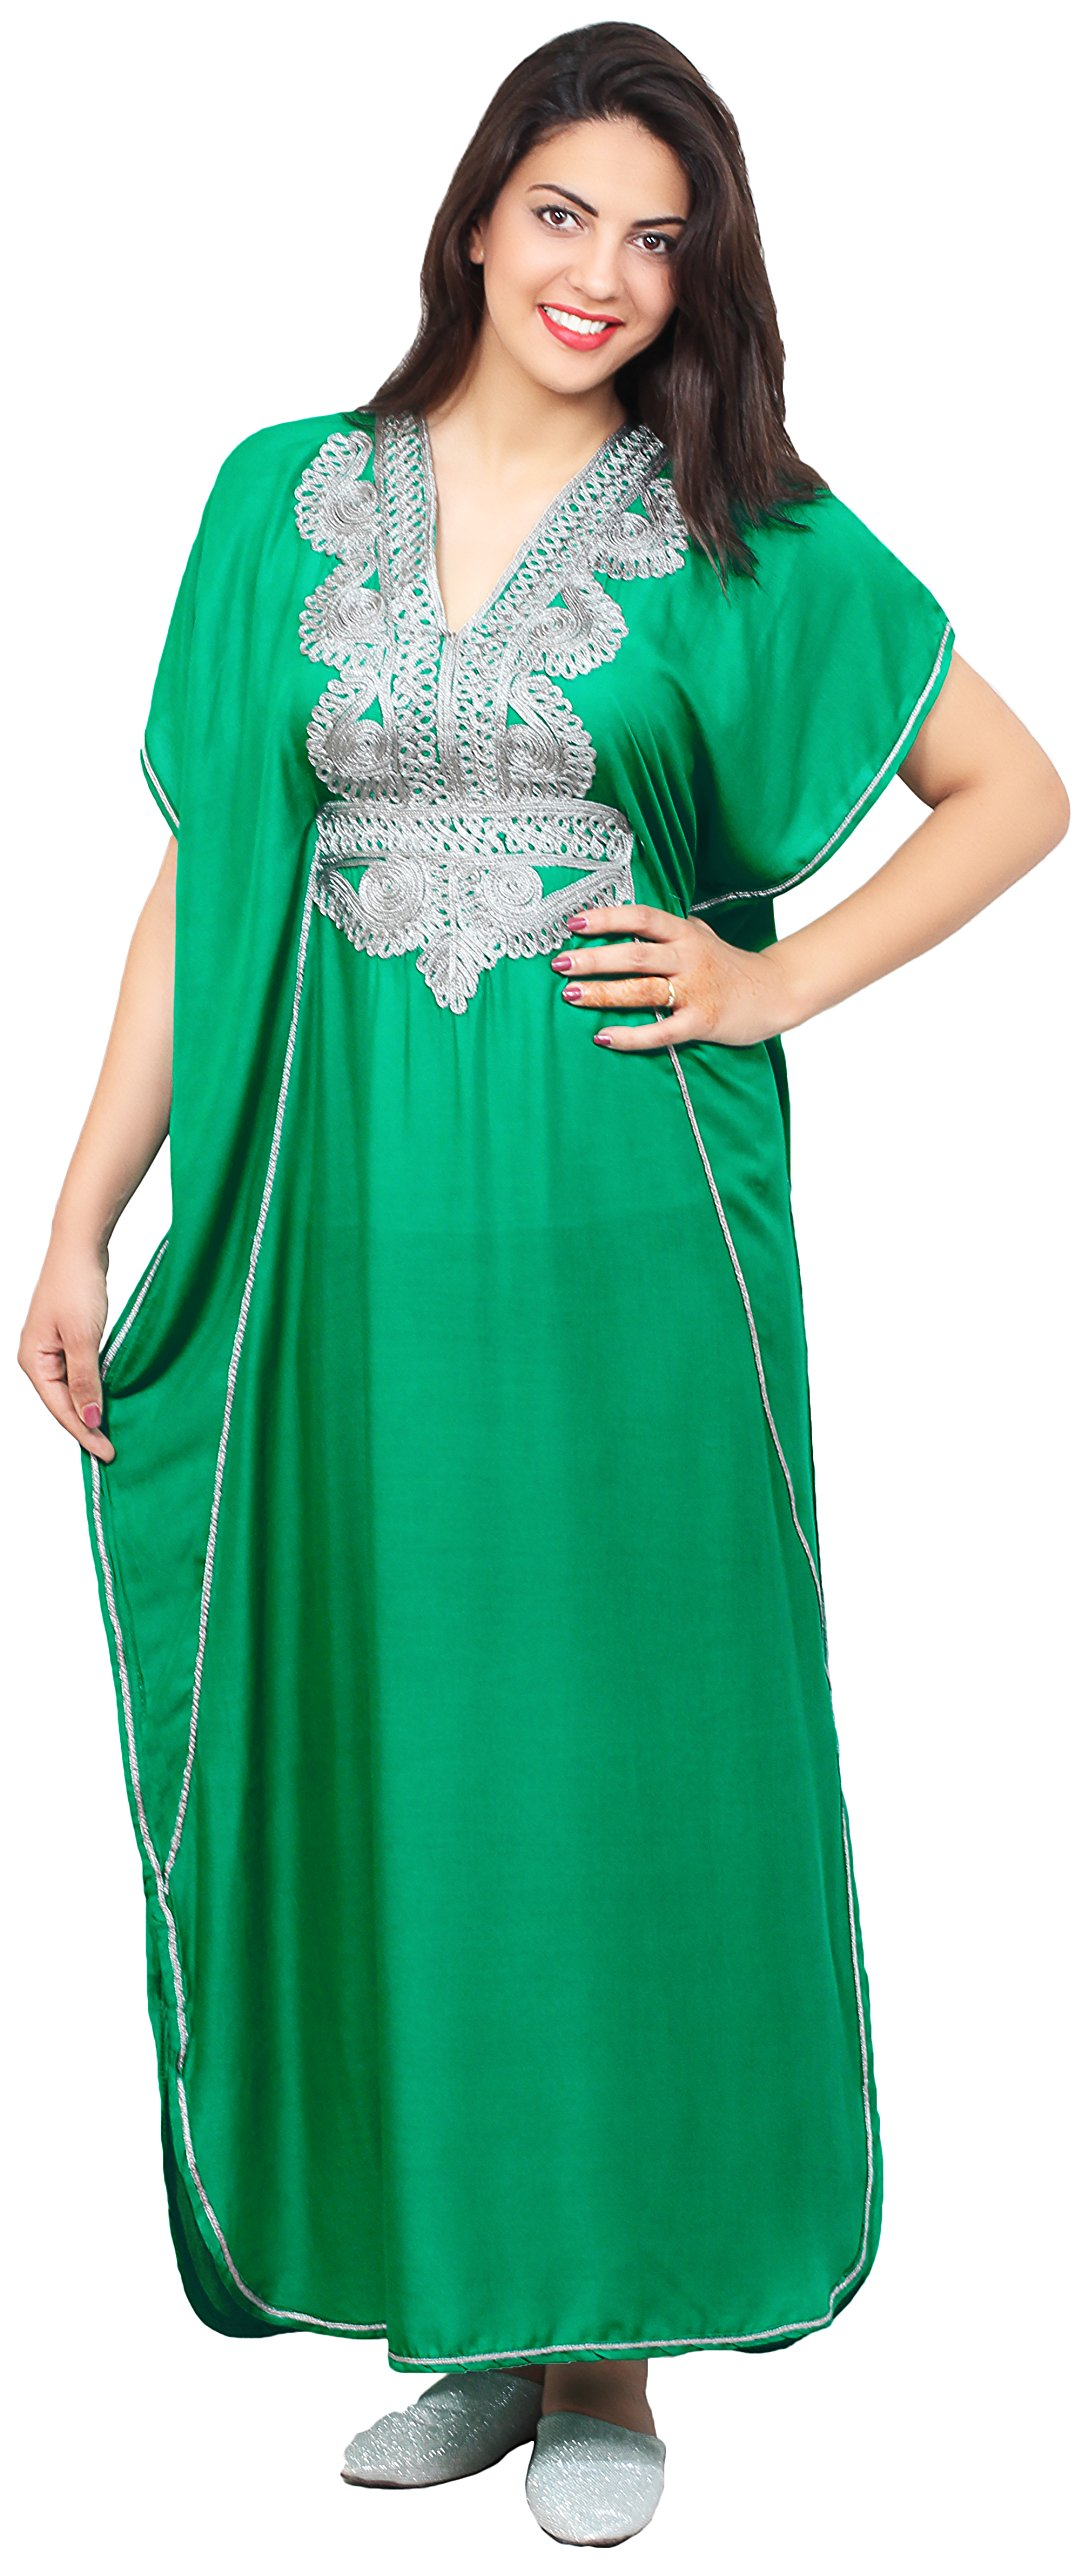 Moroccan Caftan Handmade Light Weight Cotton Silver Hand Embroidery Breathable Soft Green